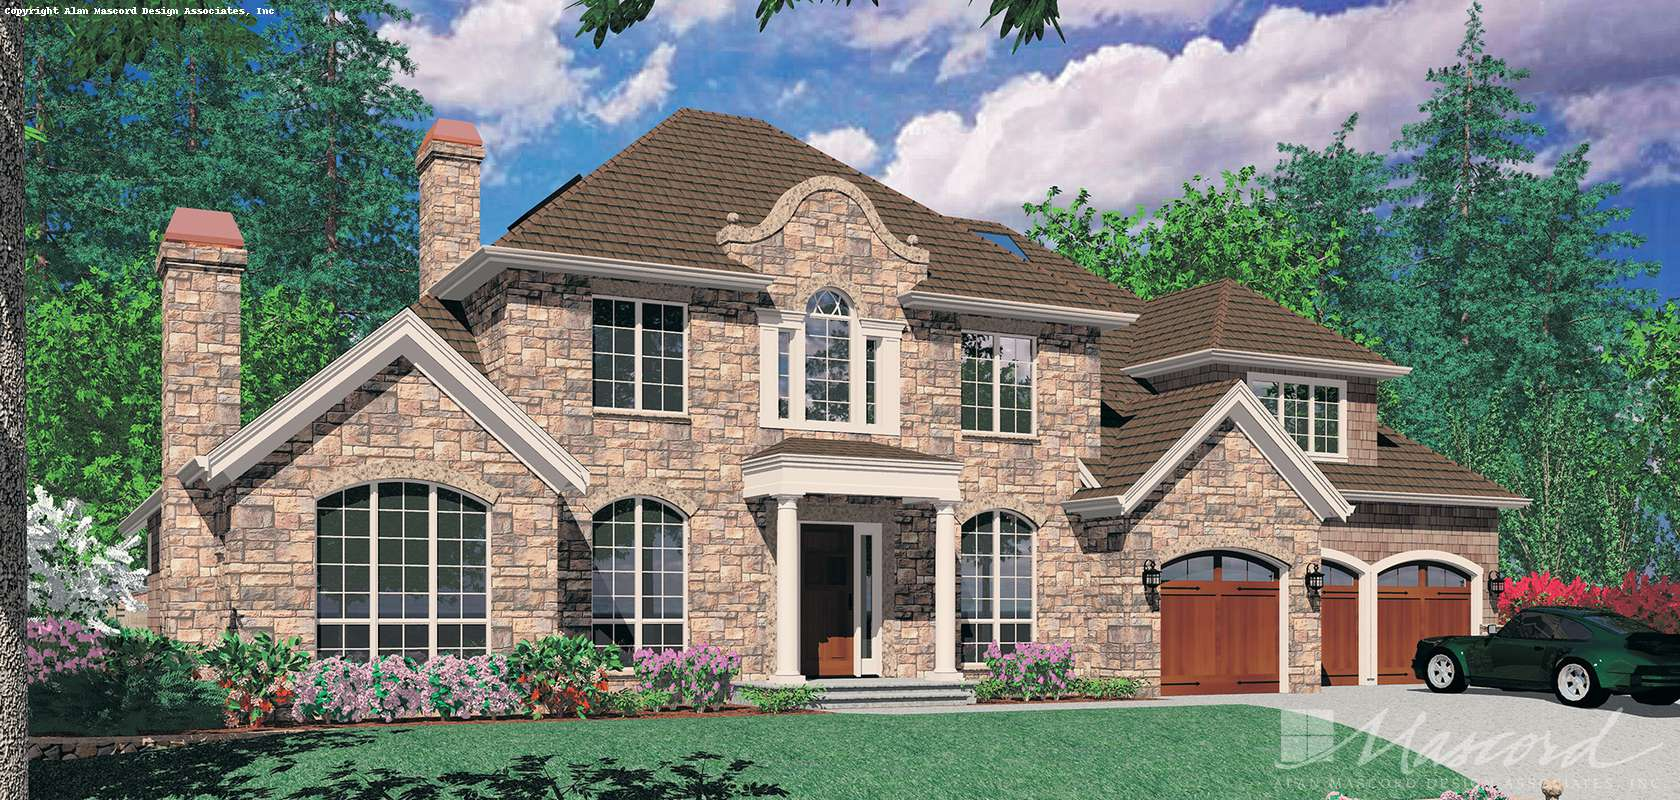 Mascord House Plan 2428: The Marigold